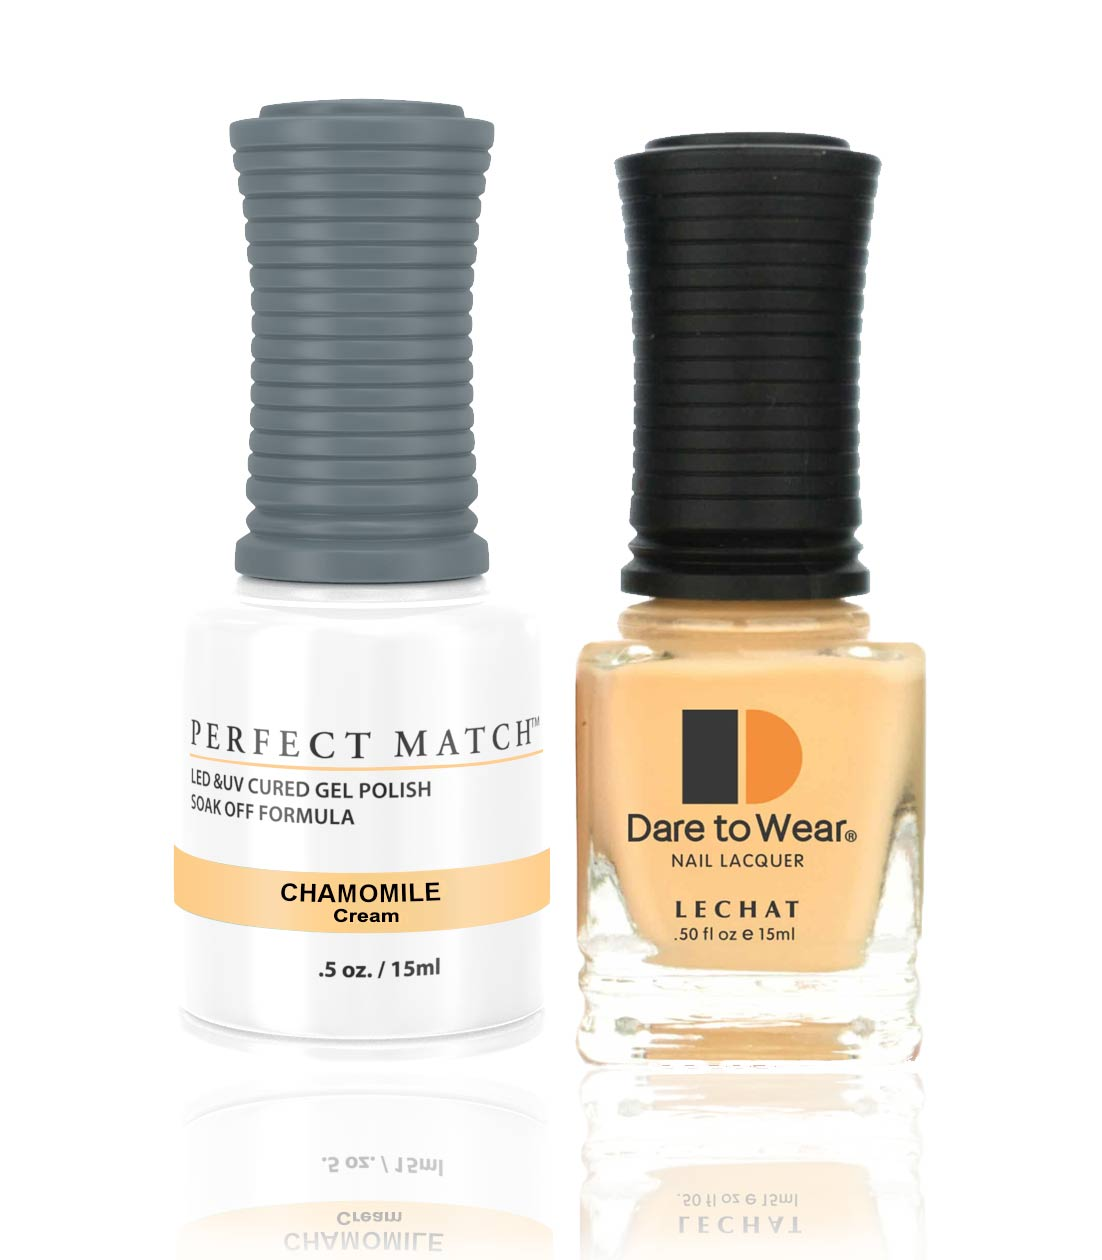 Perfect Match Chamomile PMS226